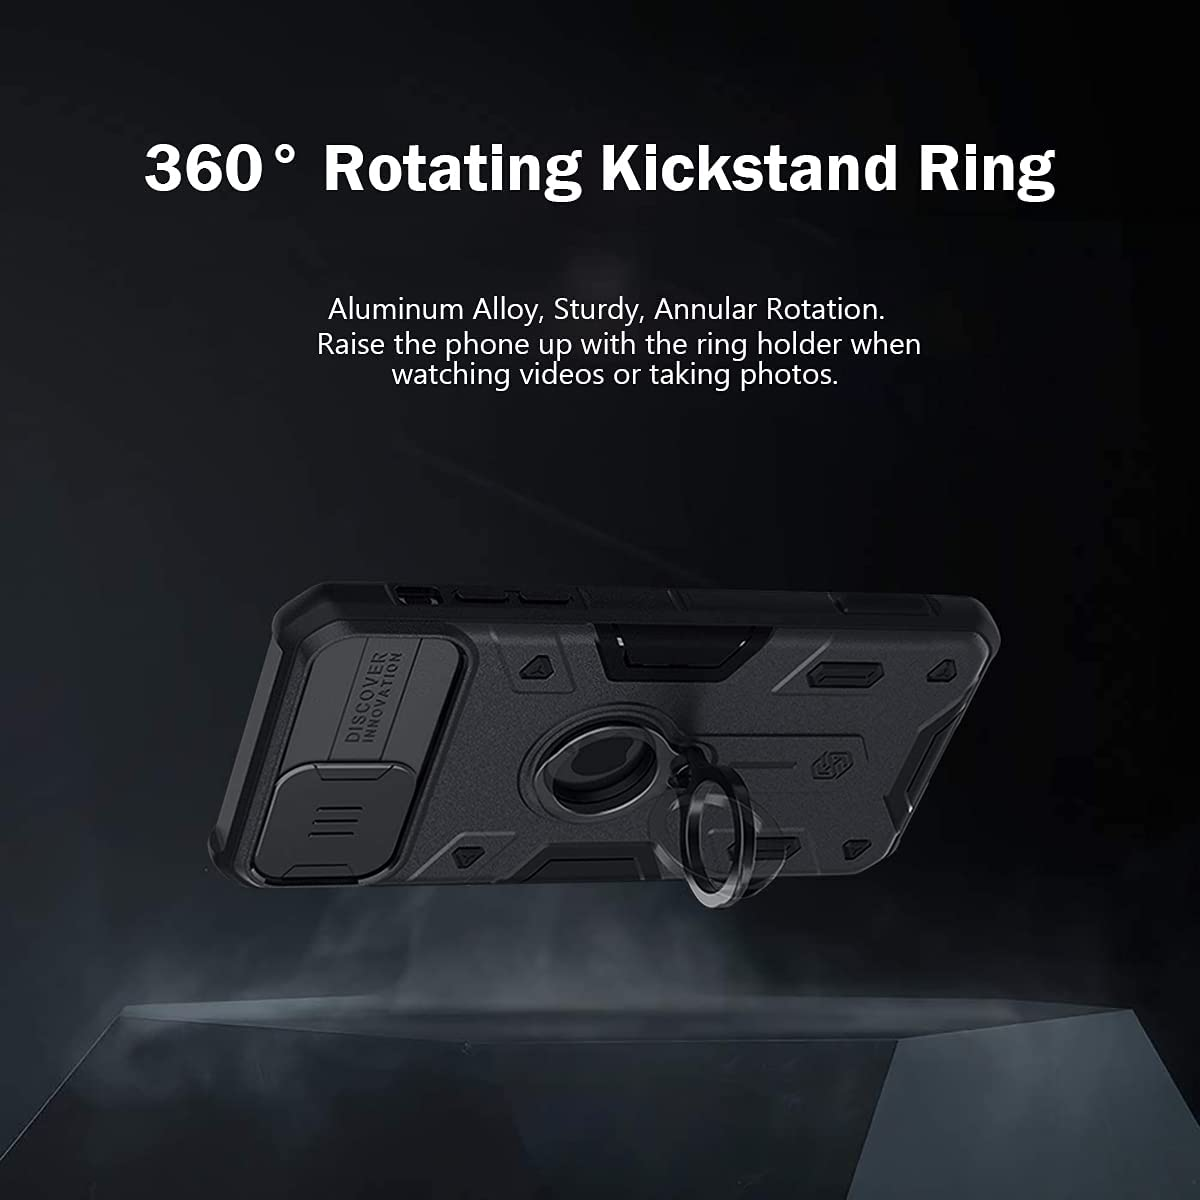 Buy CloudValley Compatible with iPhone 12, 12 Pro Case with Camera Cover &  Kickstand, Slide Lens Protector + 360° Rotate Ring Stand, Black Armor  Style, Impact-Resistant, Shockproof, Protective Bumper Online in Taiwan.  B08NX39ZLY